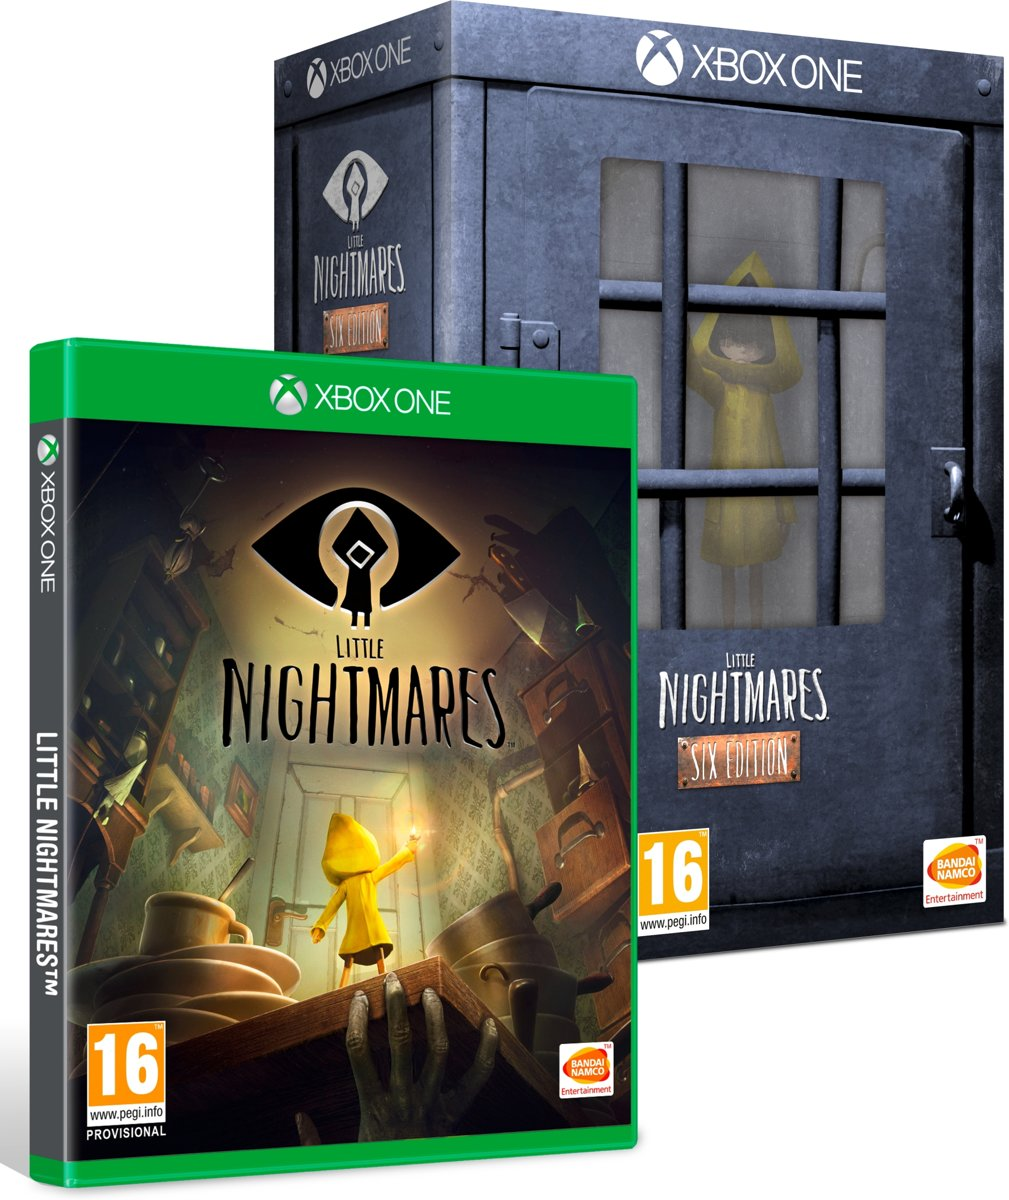 Little Nightmares - Six Edition Xbox One